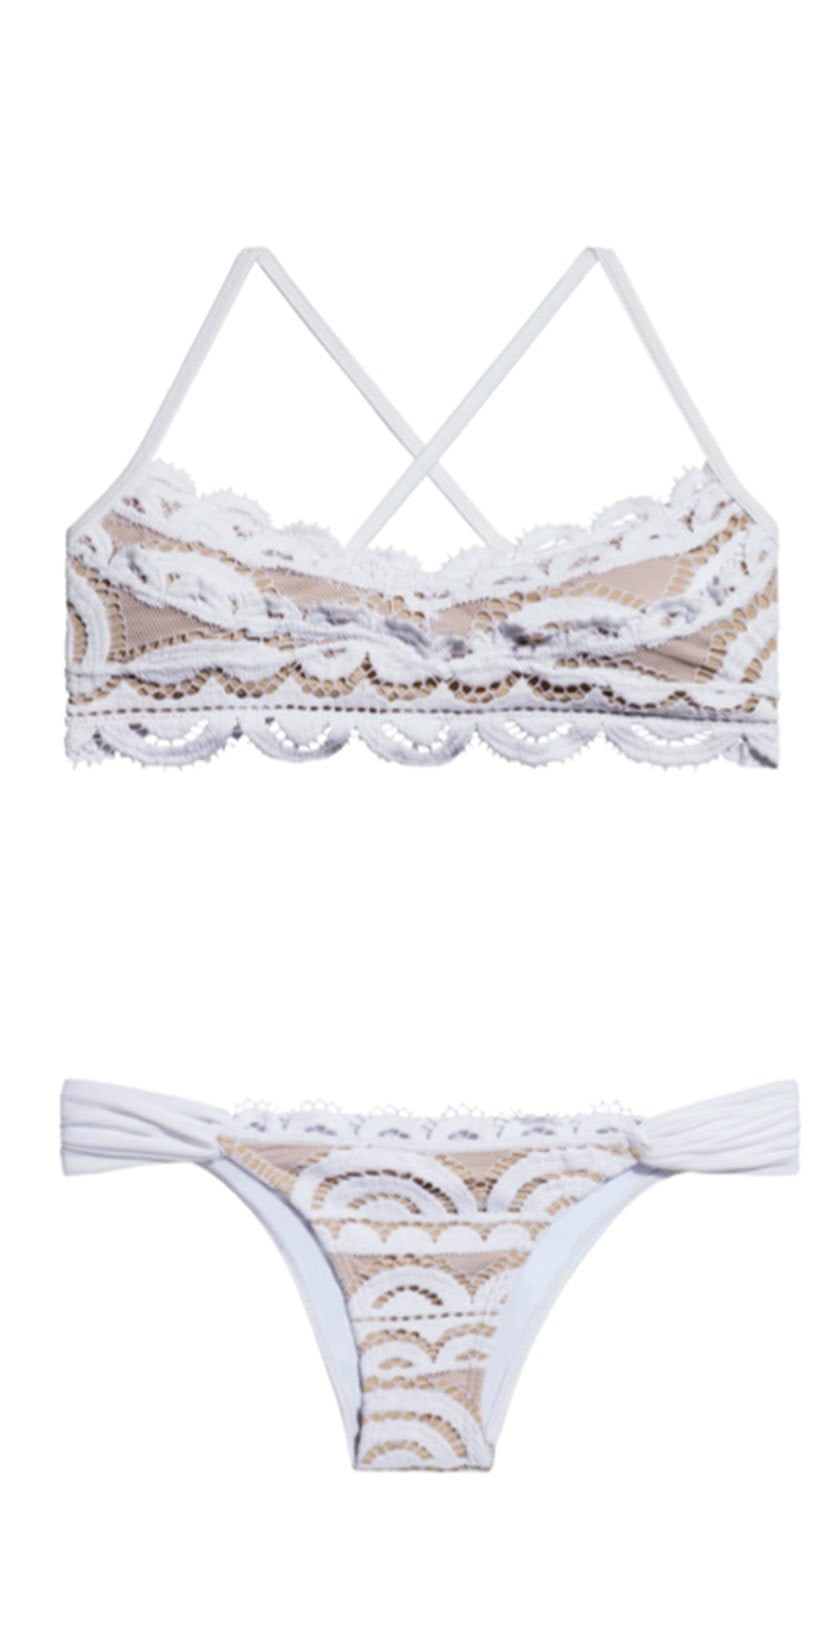 PilyQ Water Lily Lace Bralette Top in White WAT-131B top and bottom